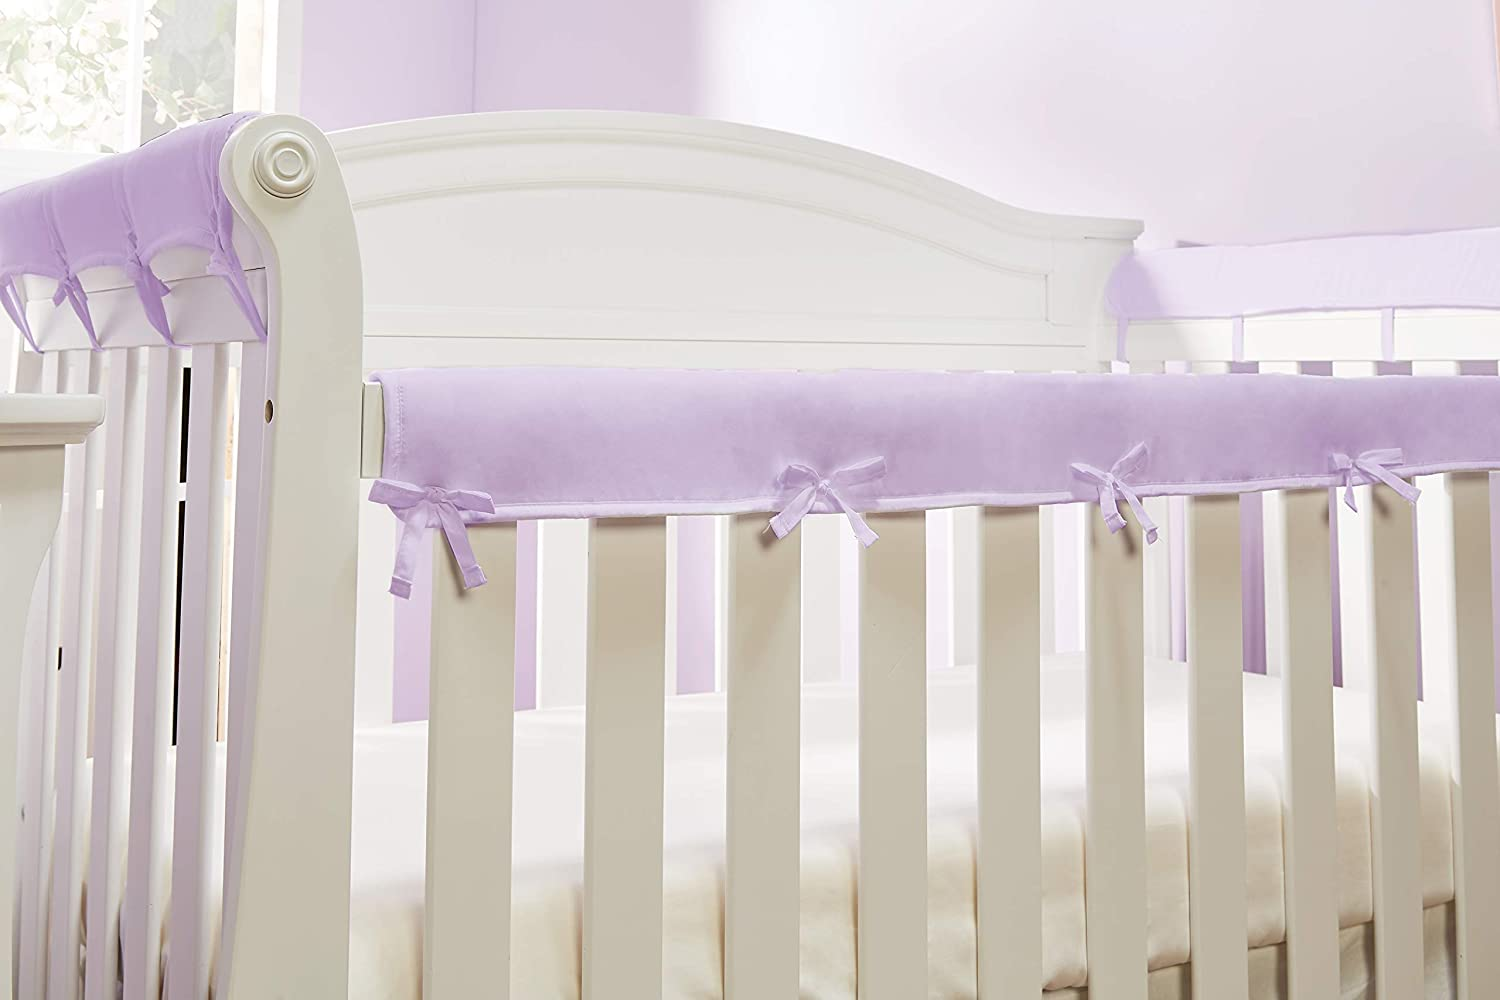 Piece Crib Rail Cover Protector Safe Teething Guard Wrap for Standard Crib Rails Reversible Safe and Secure Crib Rail Cover. Grey//White 3 Fit Side and Front Rails